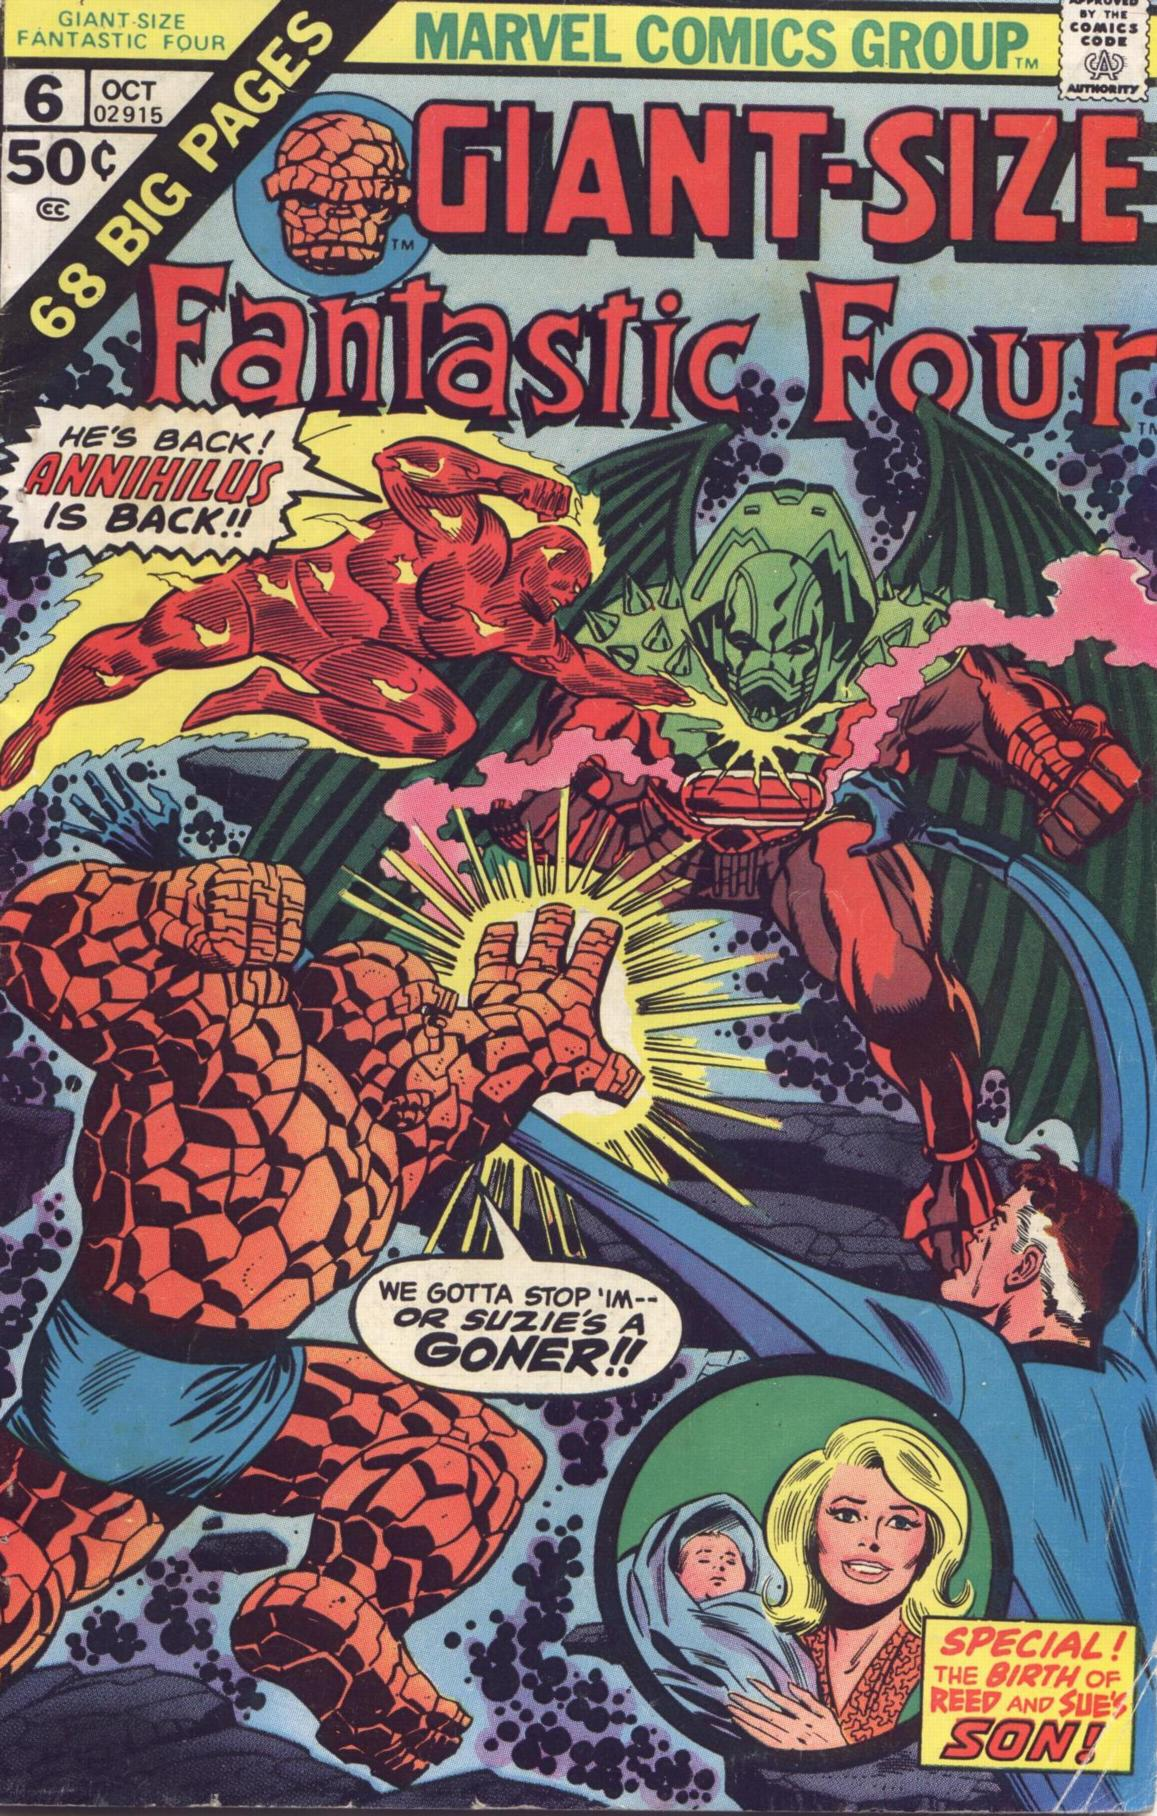 Giant-Size Fantastic Four 6 Page 1